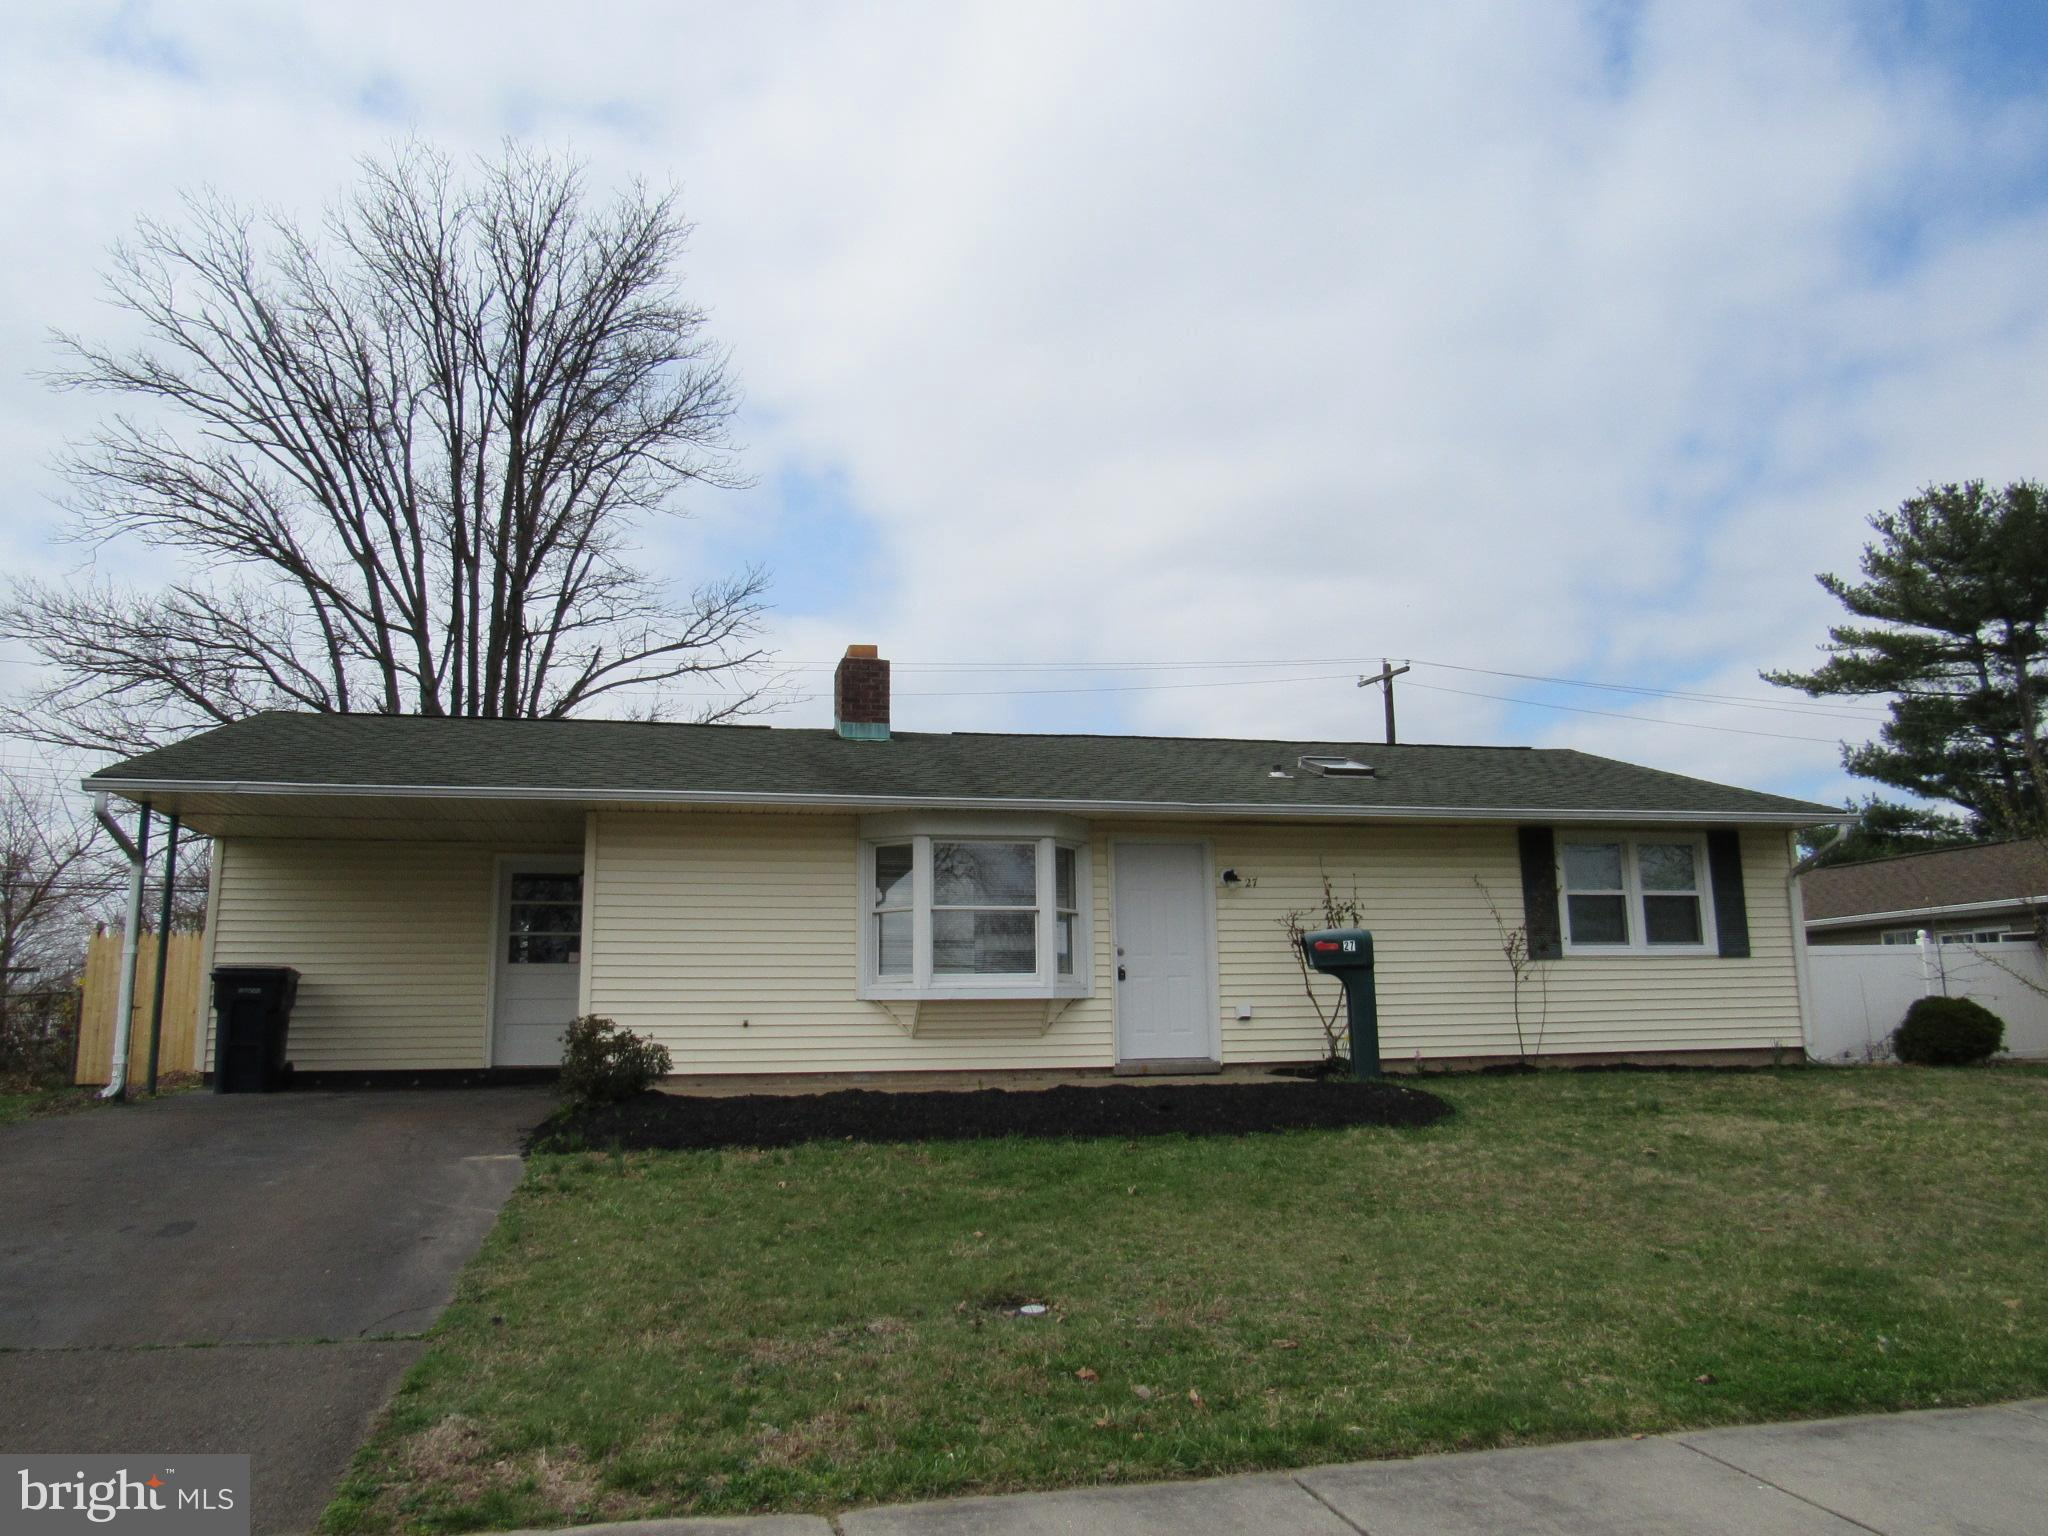 27 LAKESIDE DRIVE, LEVITTOWN, PA 19054